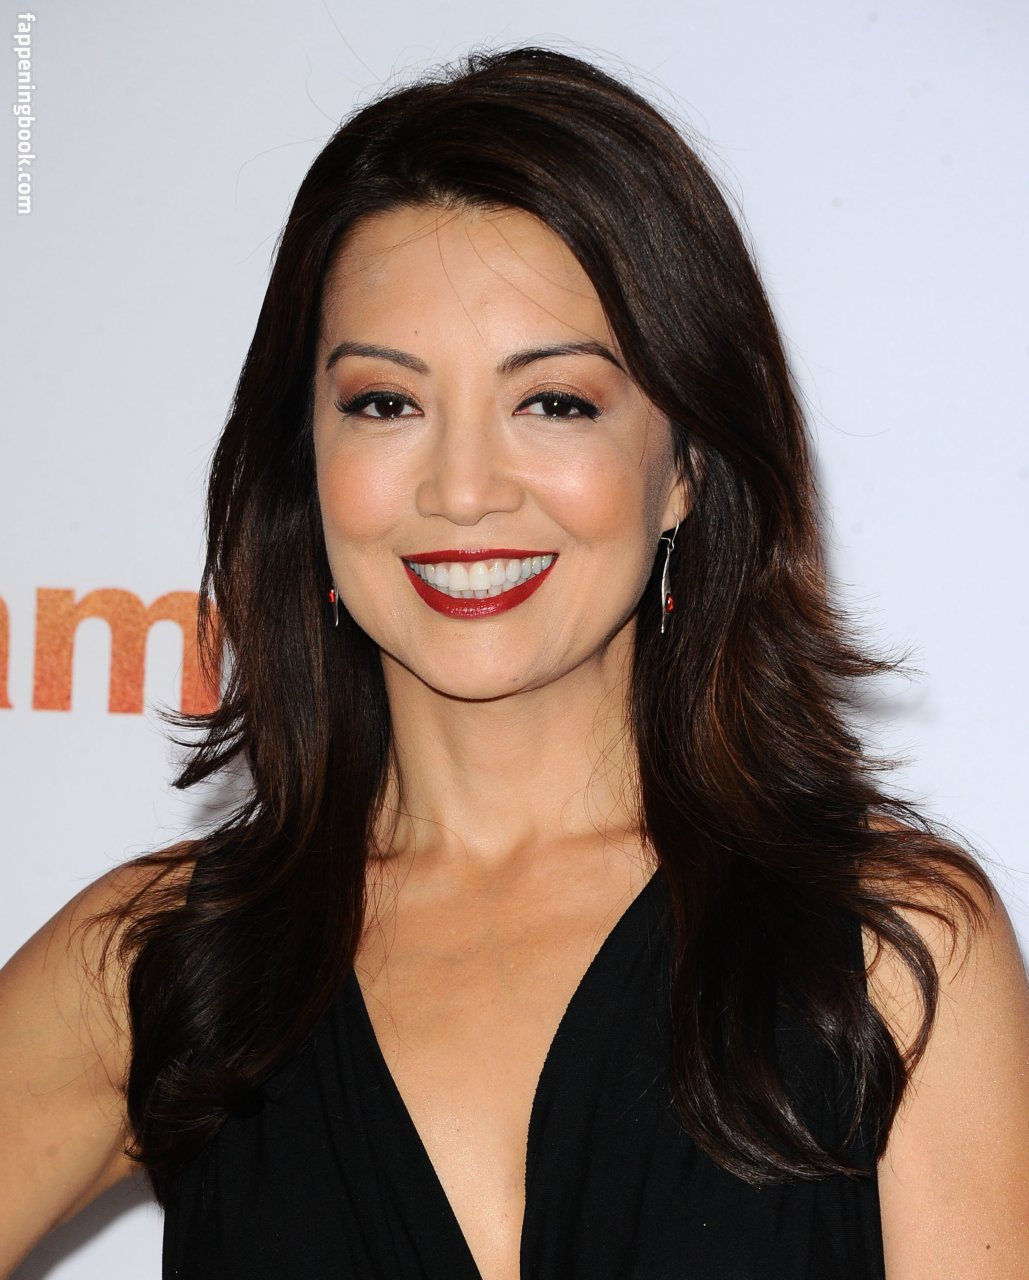 Ming-Na Wen Nude, Sexy, The Fappening, Uncensored - Photo